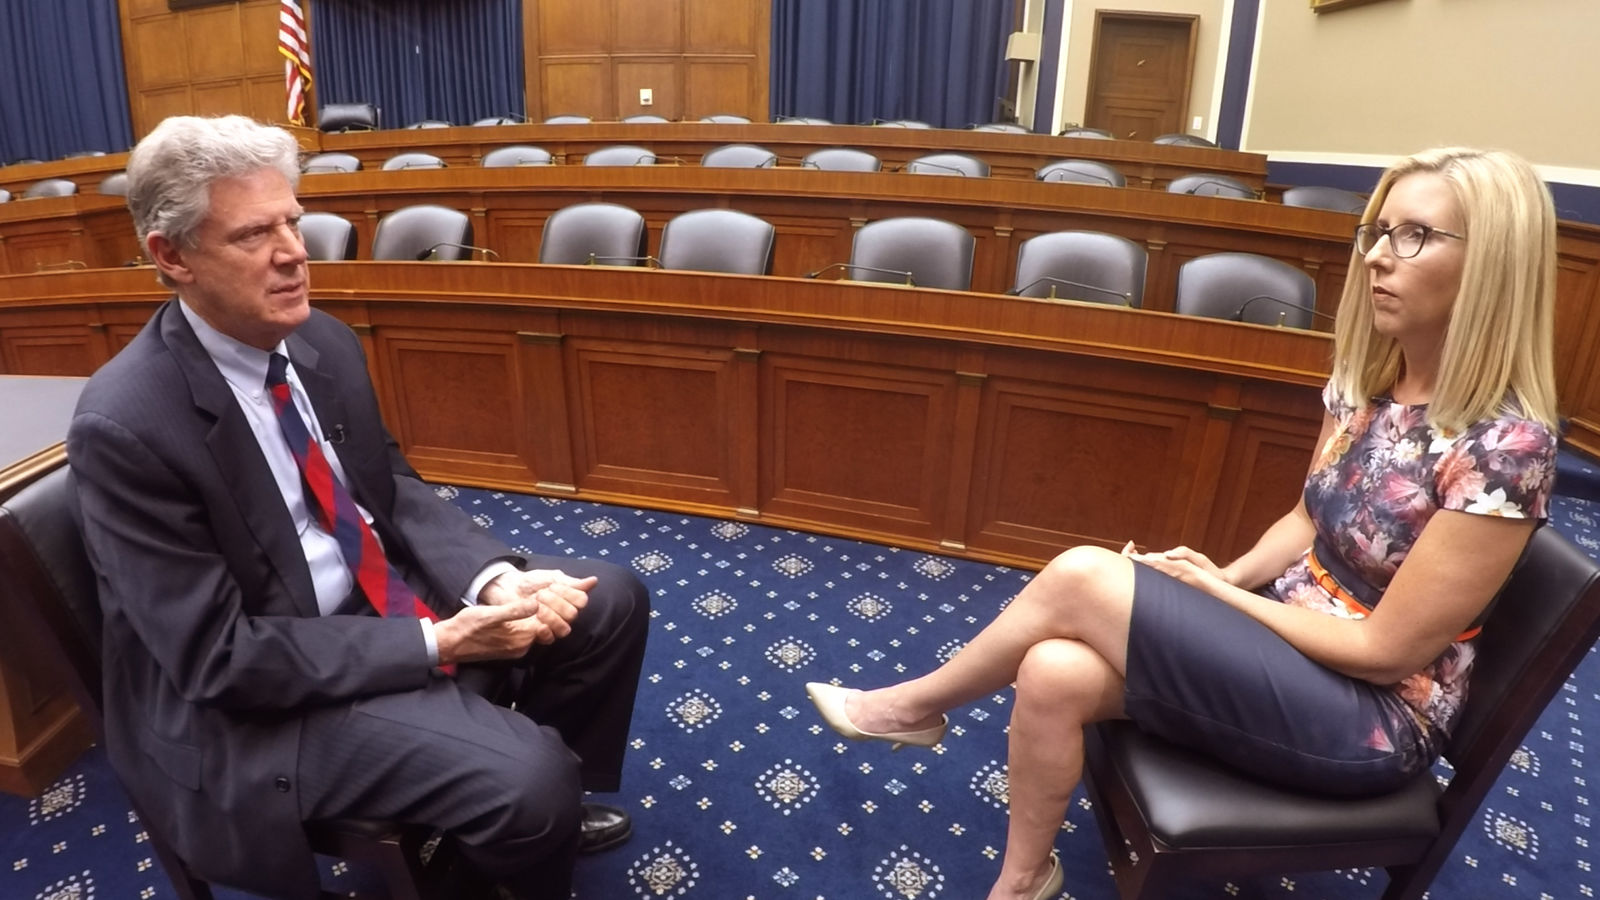 U.S. Representative Frank Pallone/(D) New Jersey (Photo: Joce Sterman and Alex Brauer, Sinclair Broadcast Group)